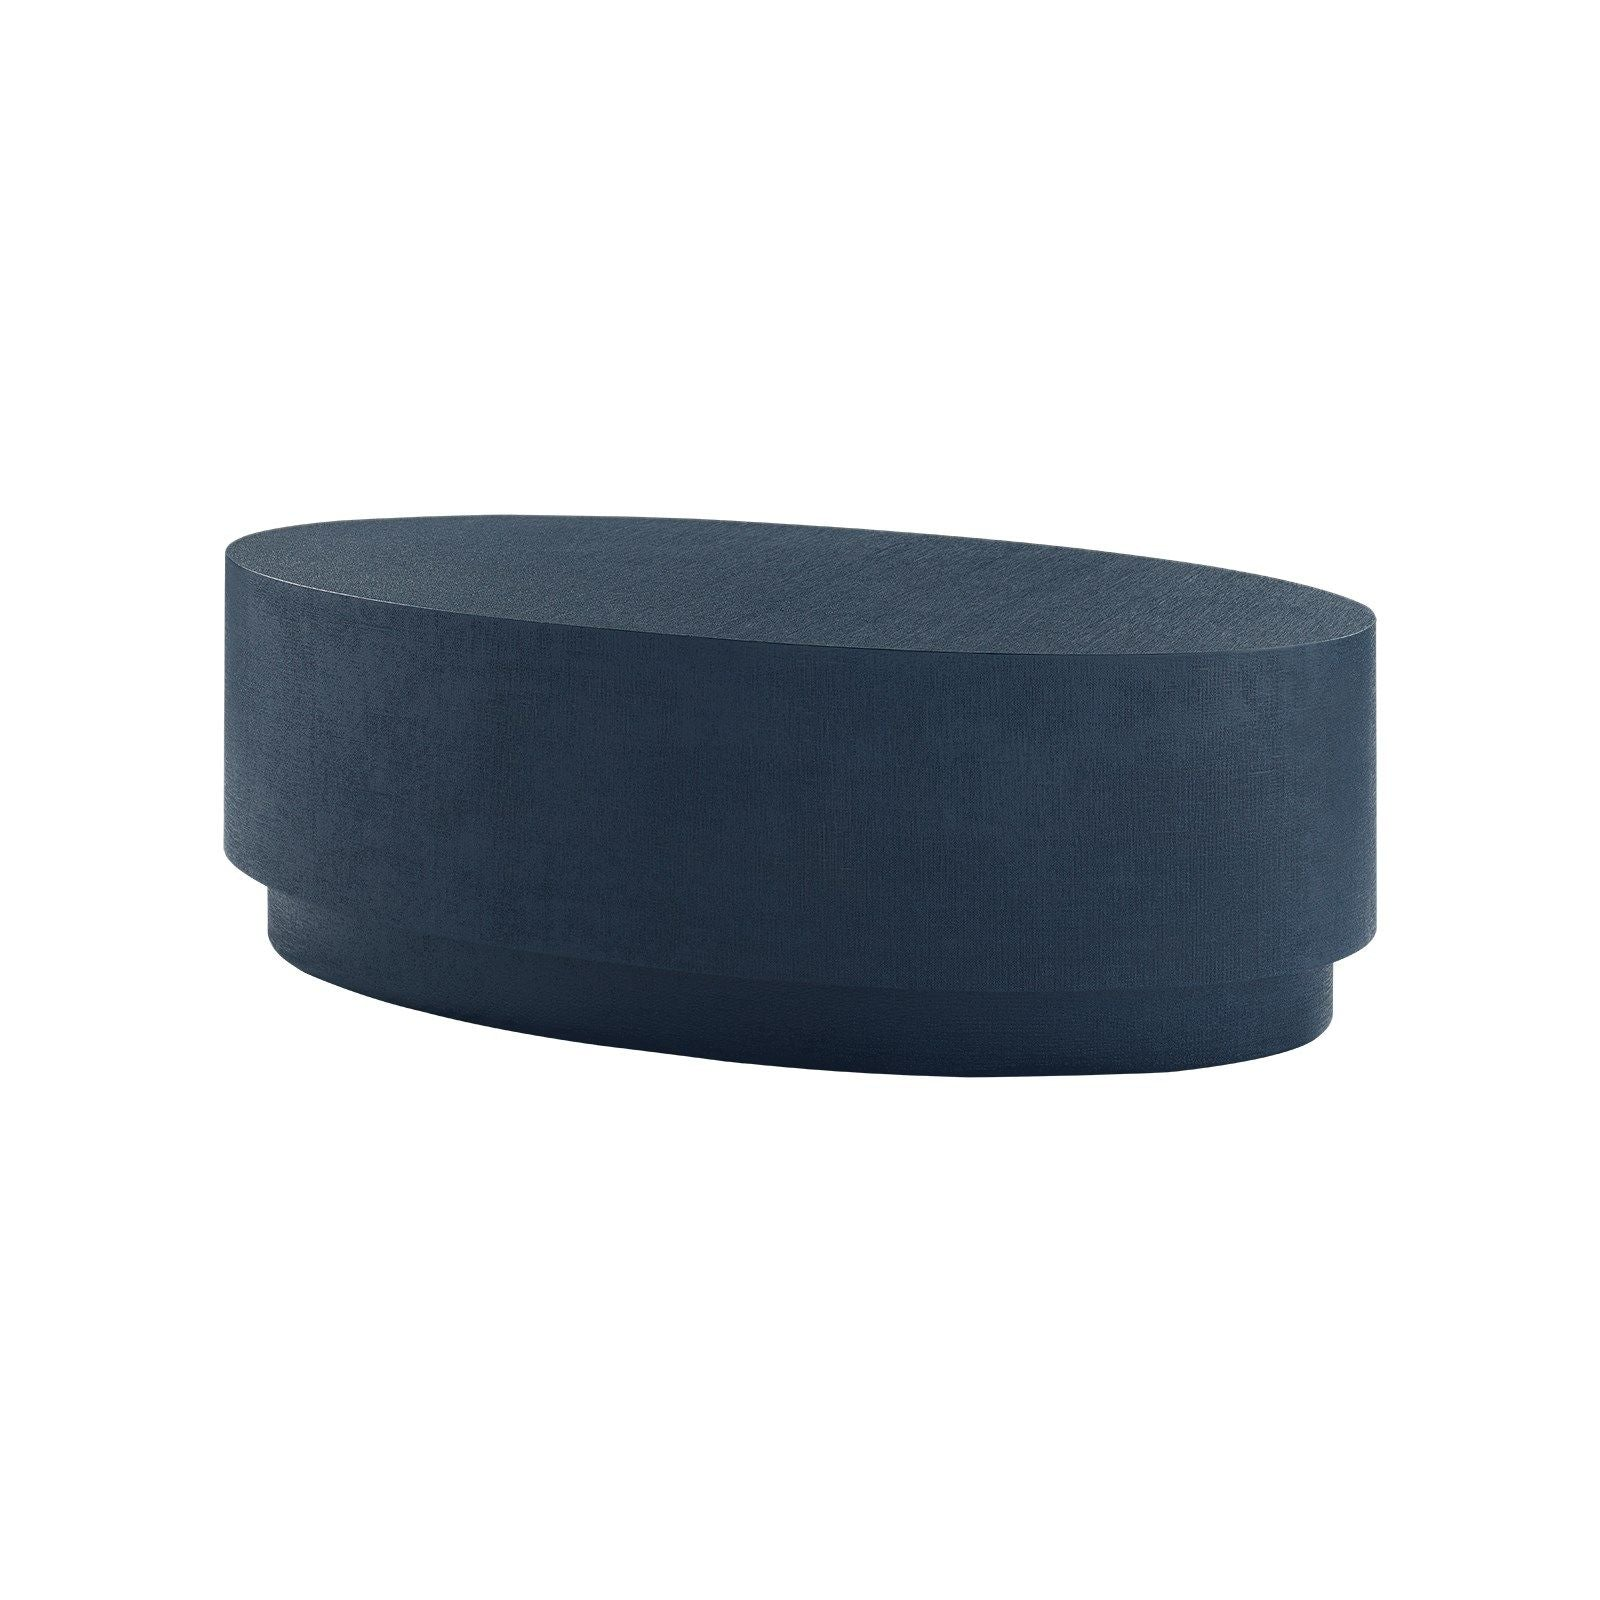 Bungalow 5 - MILA OVAL COFFEE TABLE, NAVY BLUE-Bungalow 5-Blue Hand Home